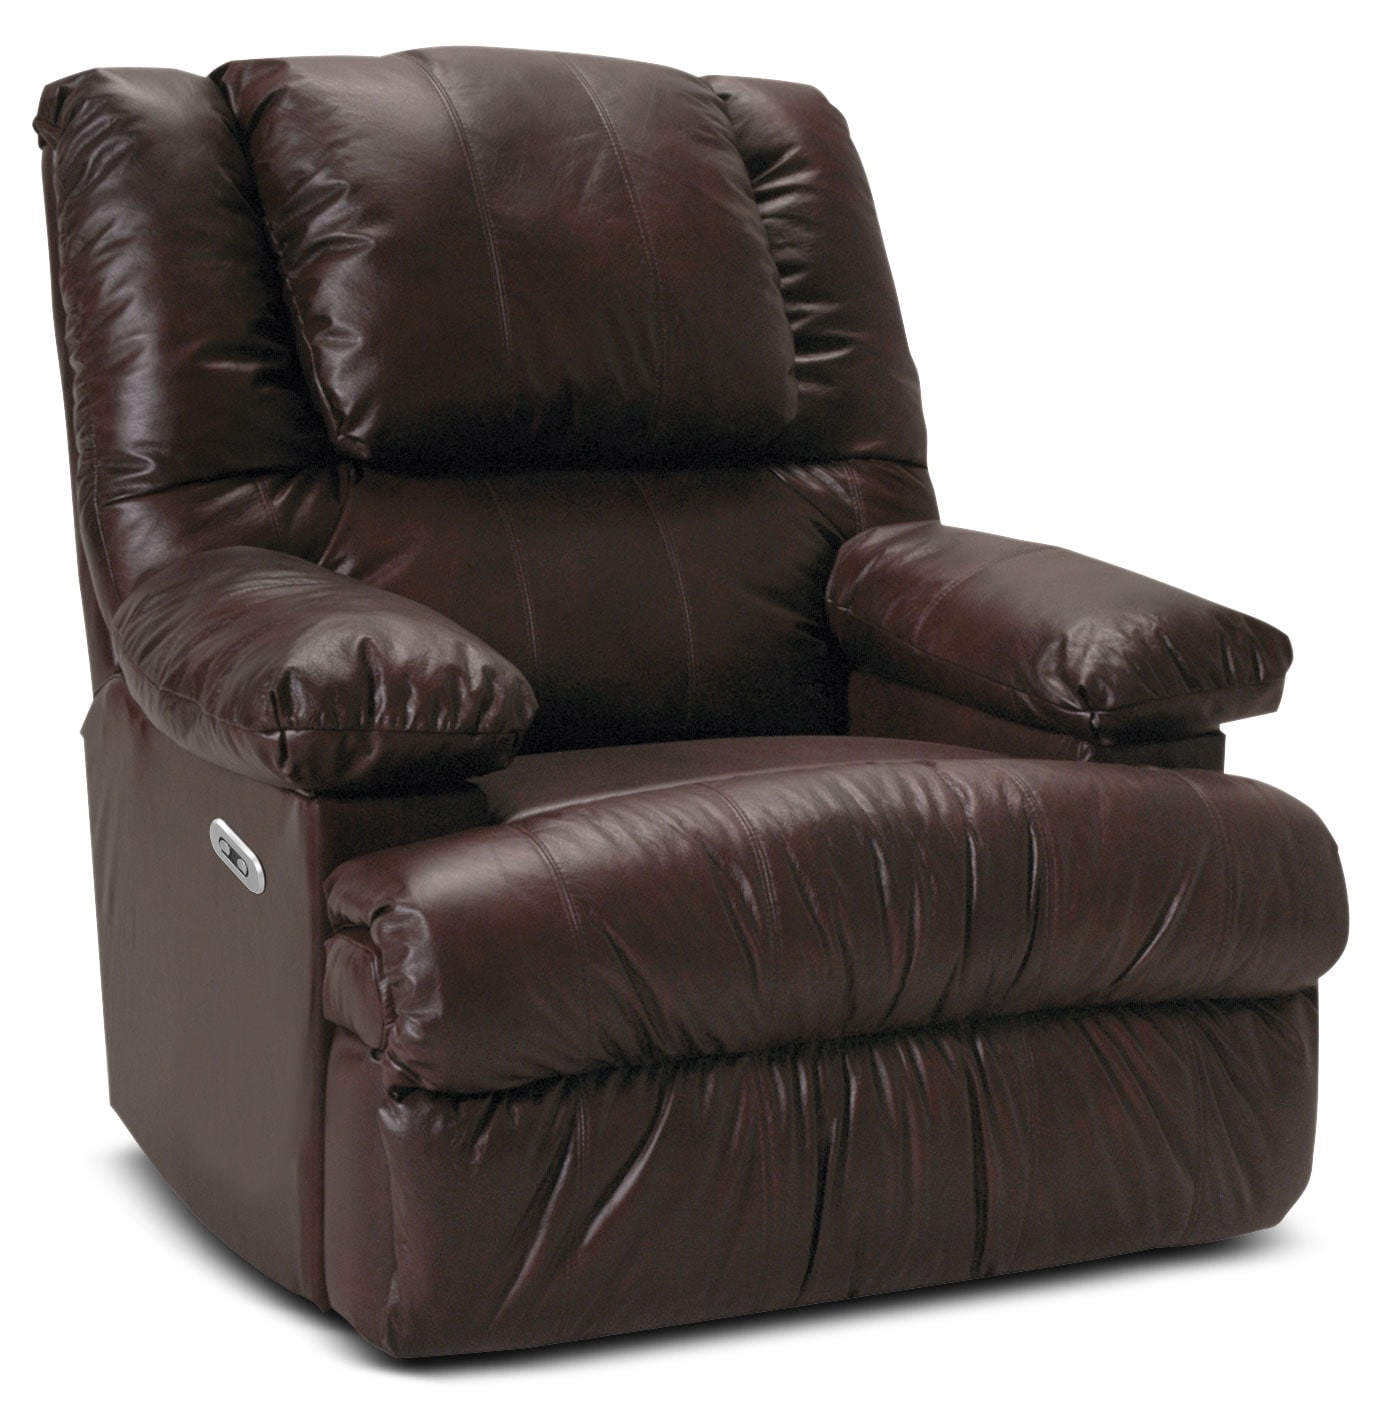 Living Room Furniture - Designed2B 5598 Bonded Leather Power Recliner with Massage and Storage - Java